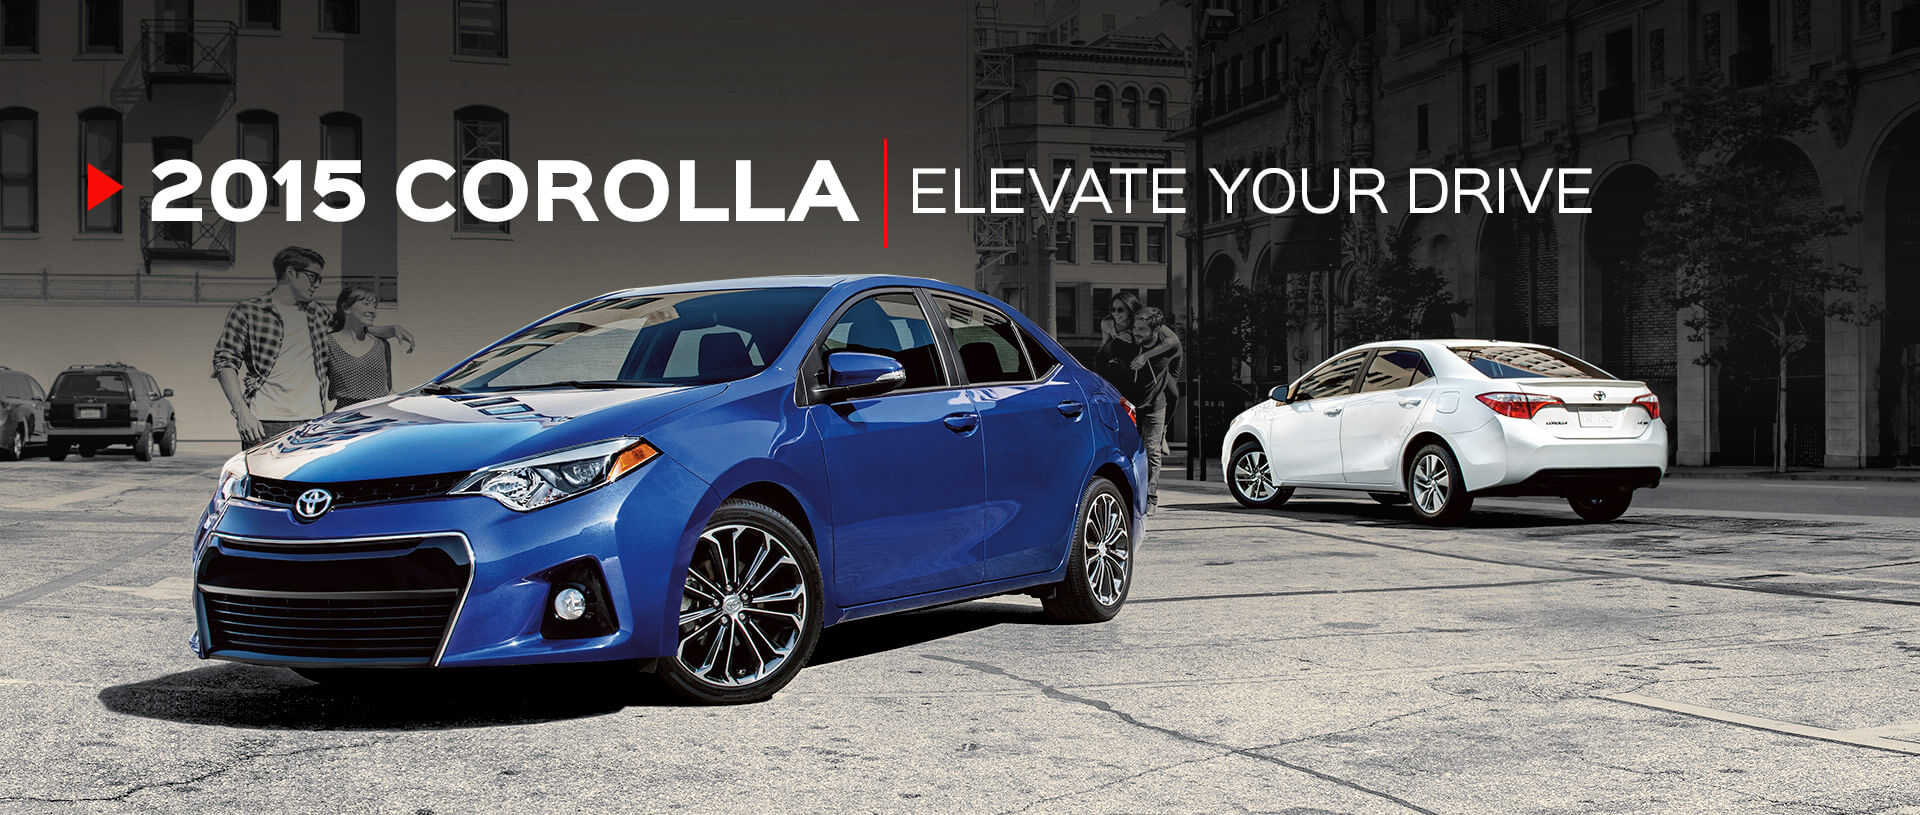 Corolla - Canned Banner